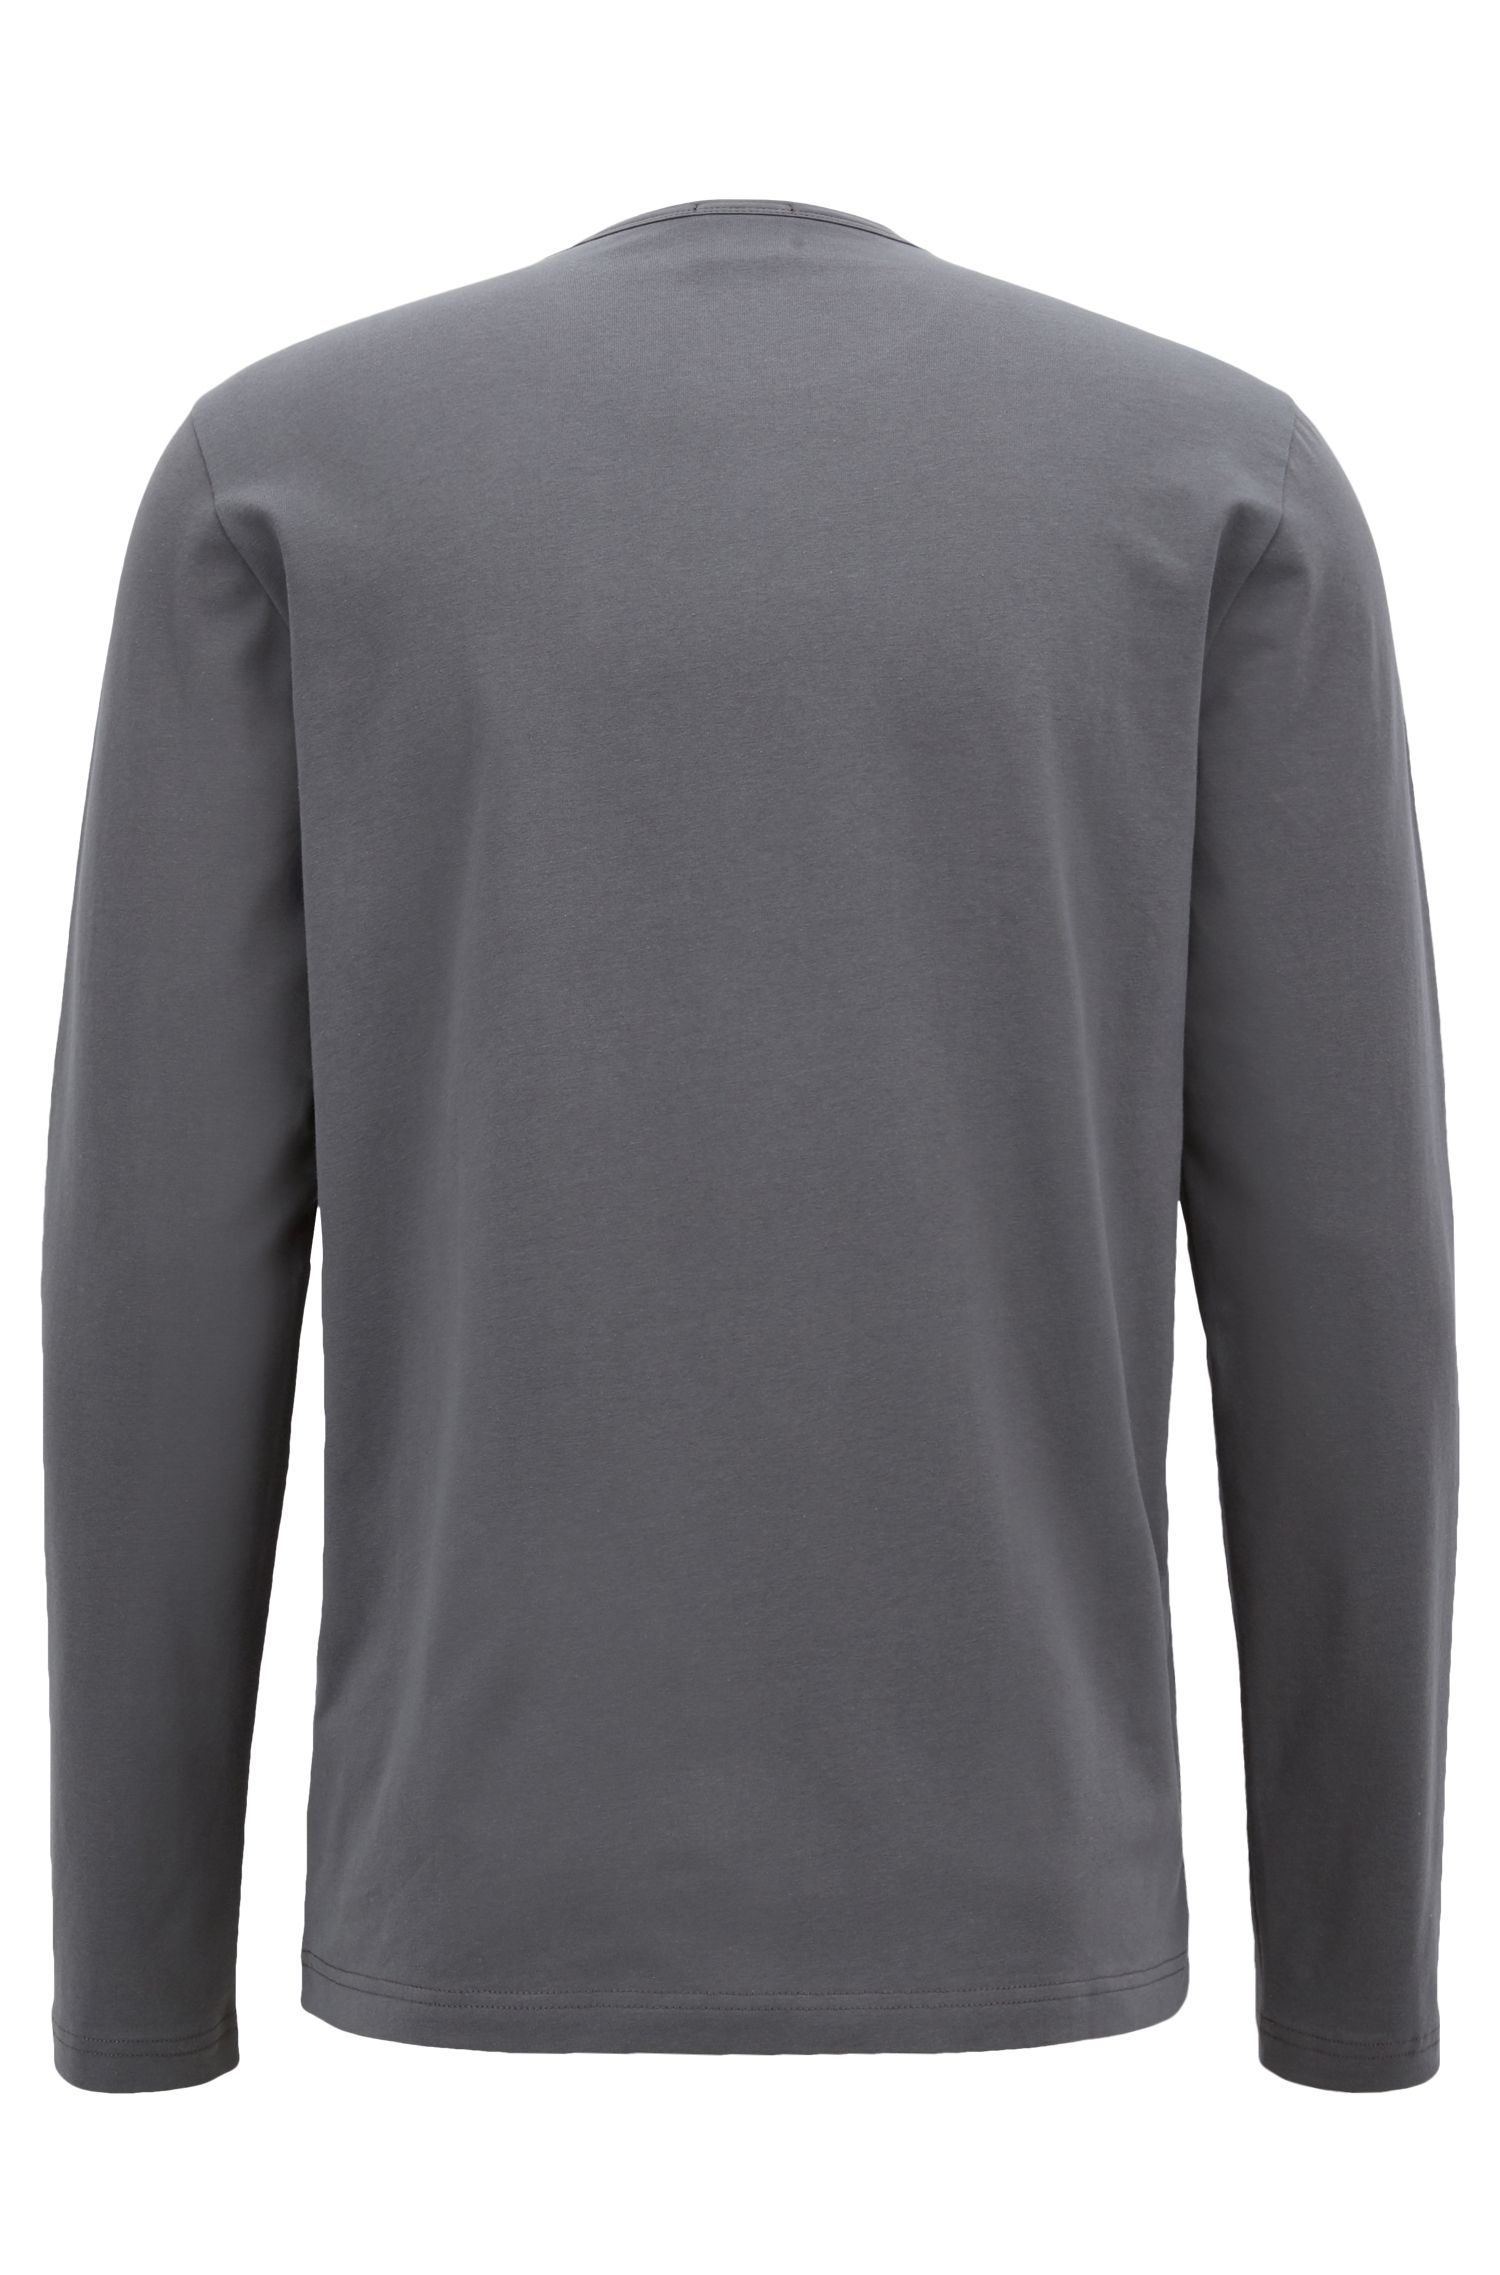 Long-sleeved T-shirt in stretch cotton with reflective logo, Anthracite